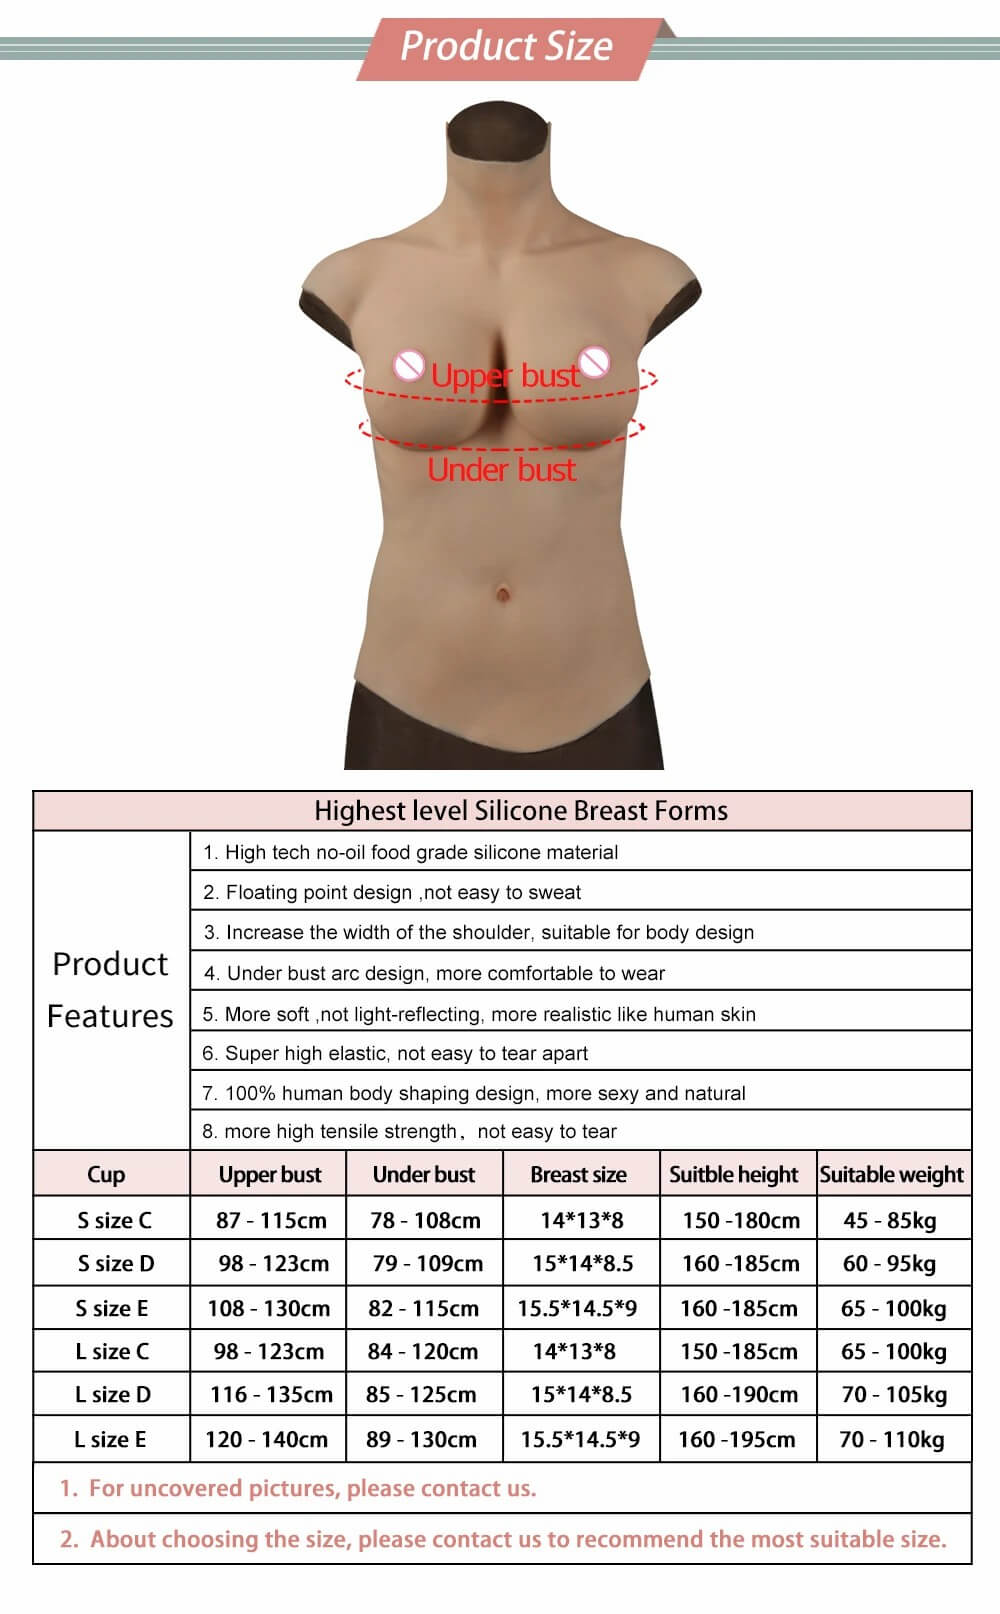 highest level silicone breast forms size chart and breastplate features